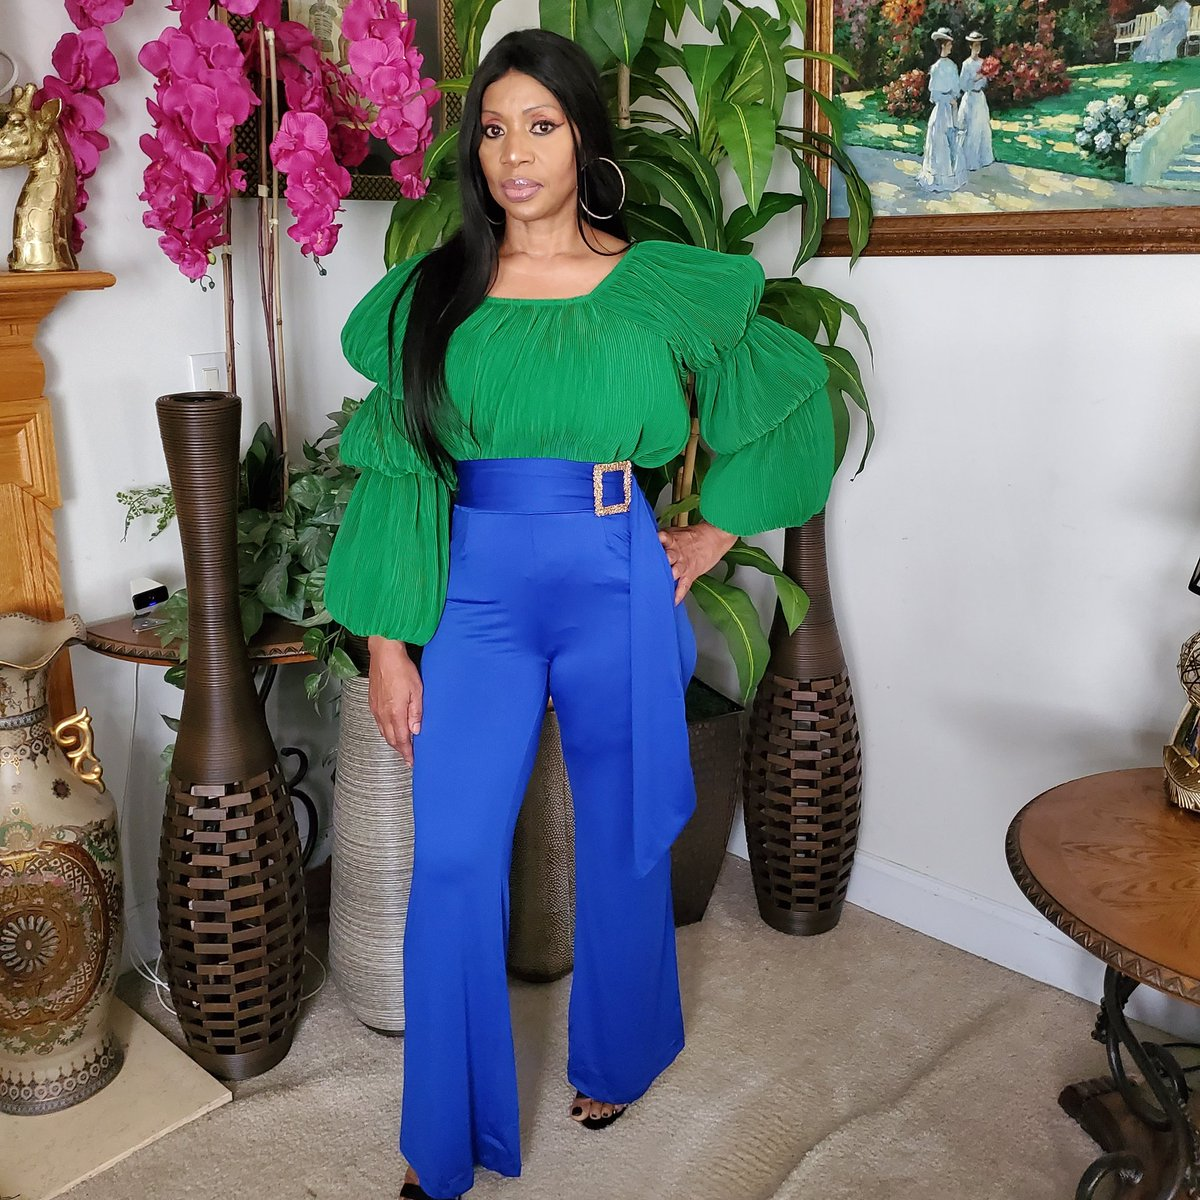 Turn Heads In Our Dandie top And Brooklyn Pants!  Click Here To Purchase     #fashion #tops #Pants #BlackOwned #share #Repost #viral #viralvideo #style #OutfitOfTheDay #Trending #beauty #ad #Tbt #trends #shoplocal #Facebook #fanart